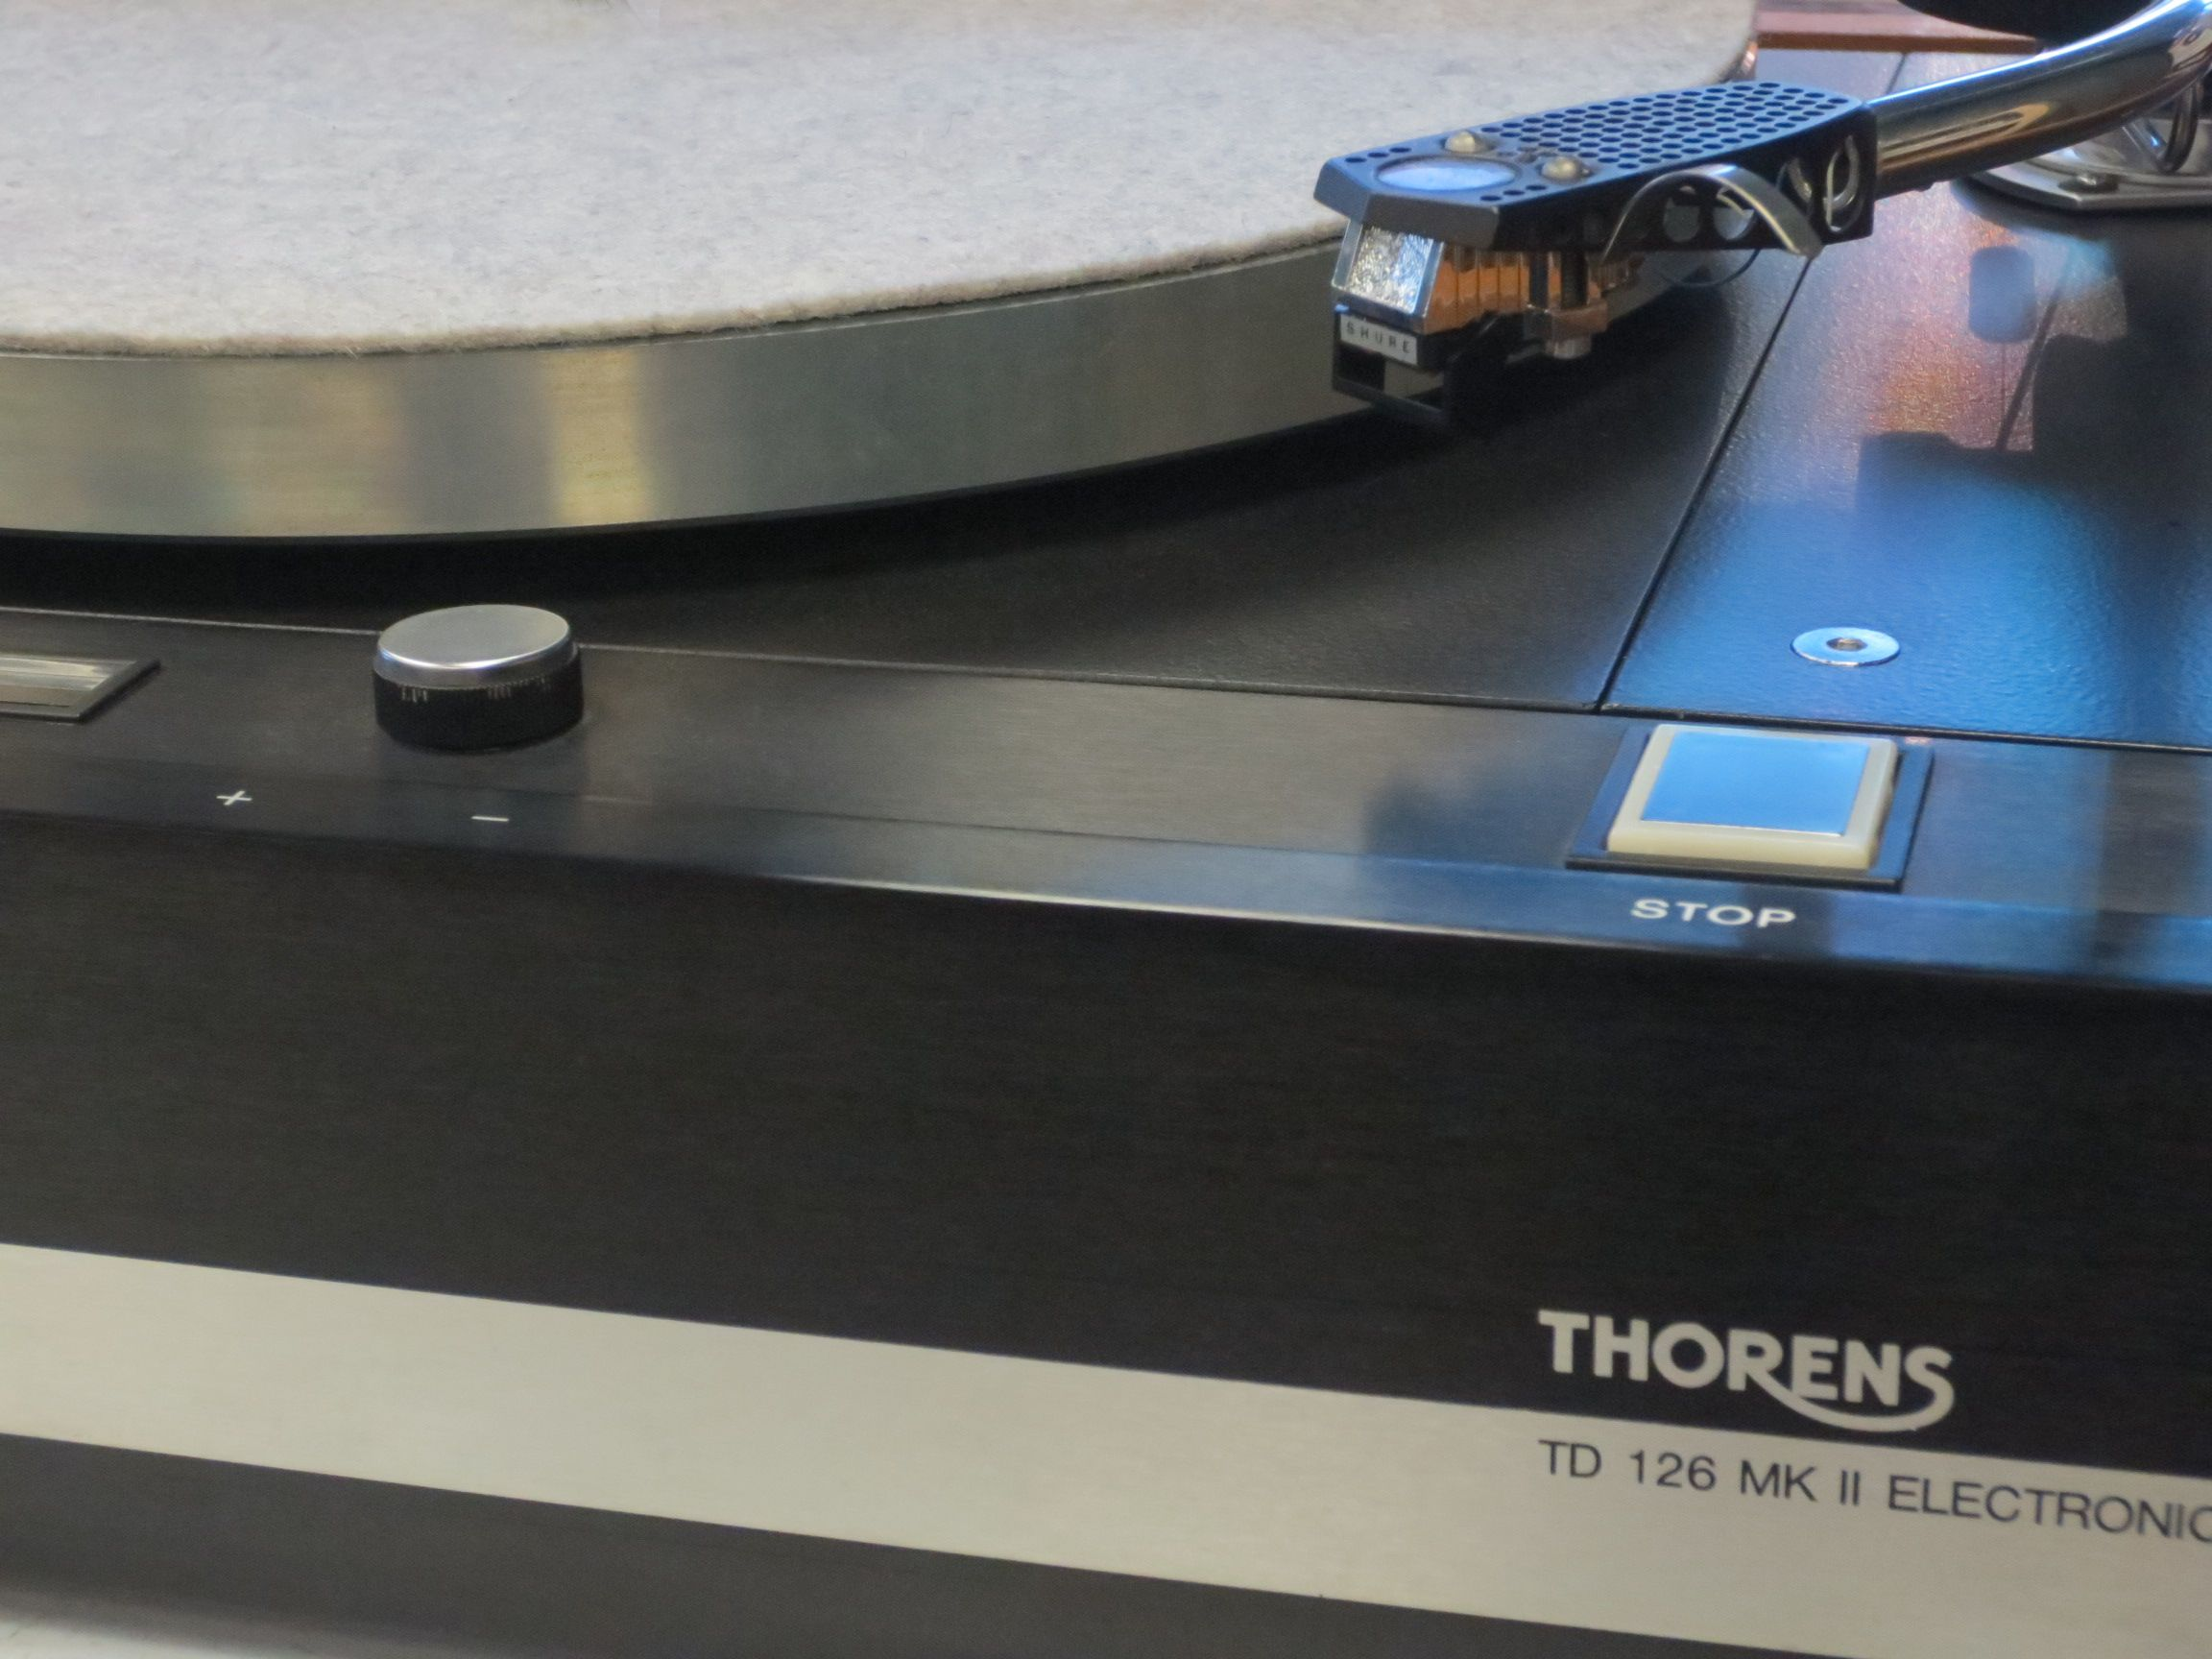 The Thorens TD 125 and Thorens TD 126 - The Turntable Shop